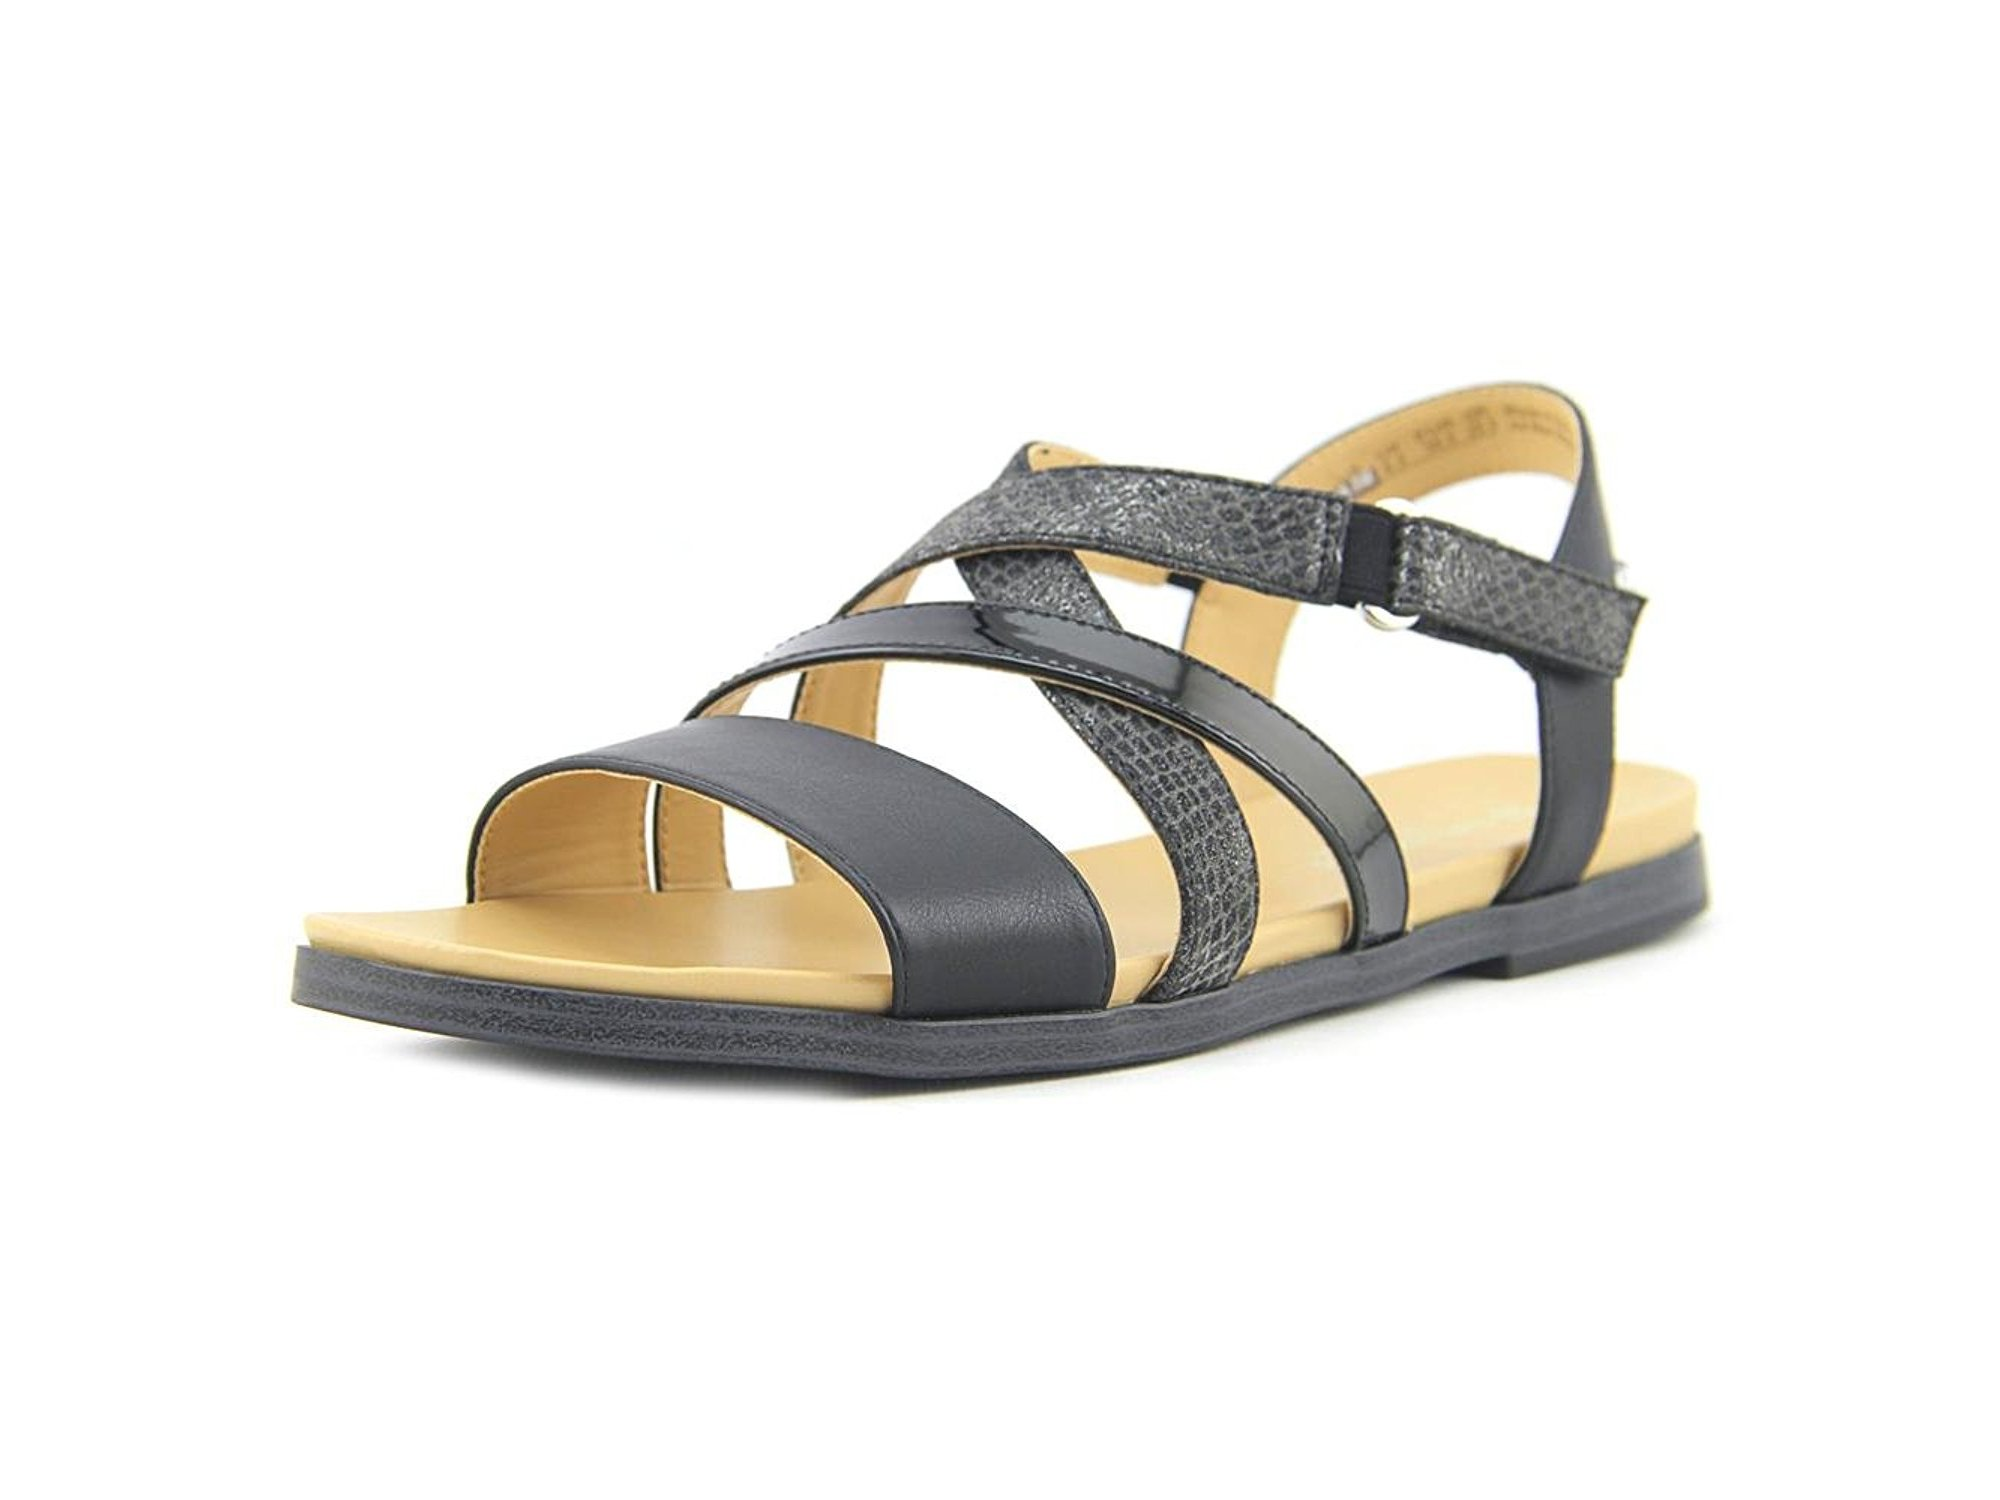 Naturalizer Womens Kandy Open Toe Casual Slingback Sandals by Naturalizer